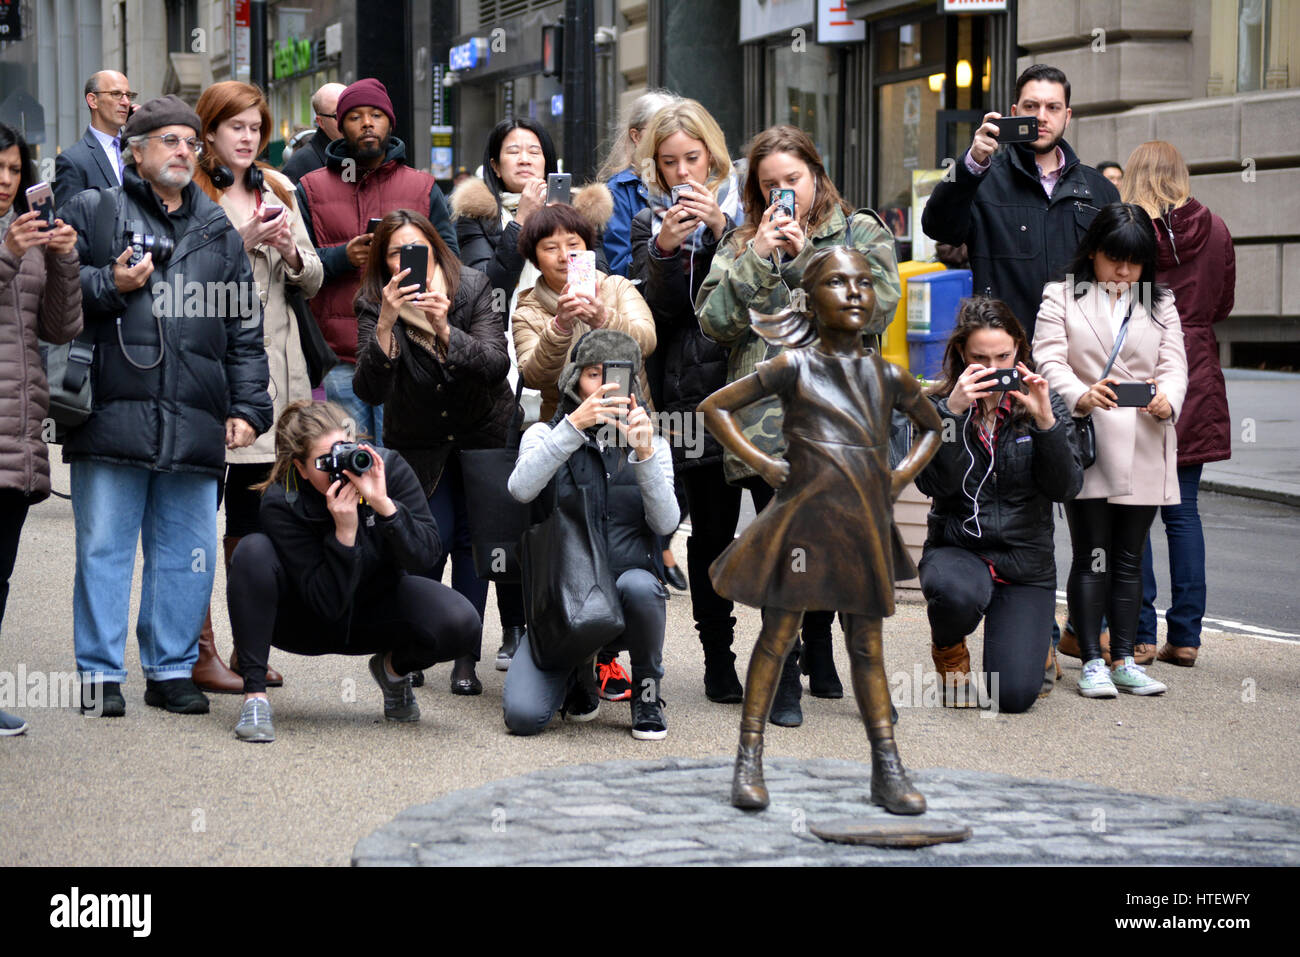 People taking pictures of 'The Fearless Girl' statue in Lower Manhattan. - Stock Image